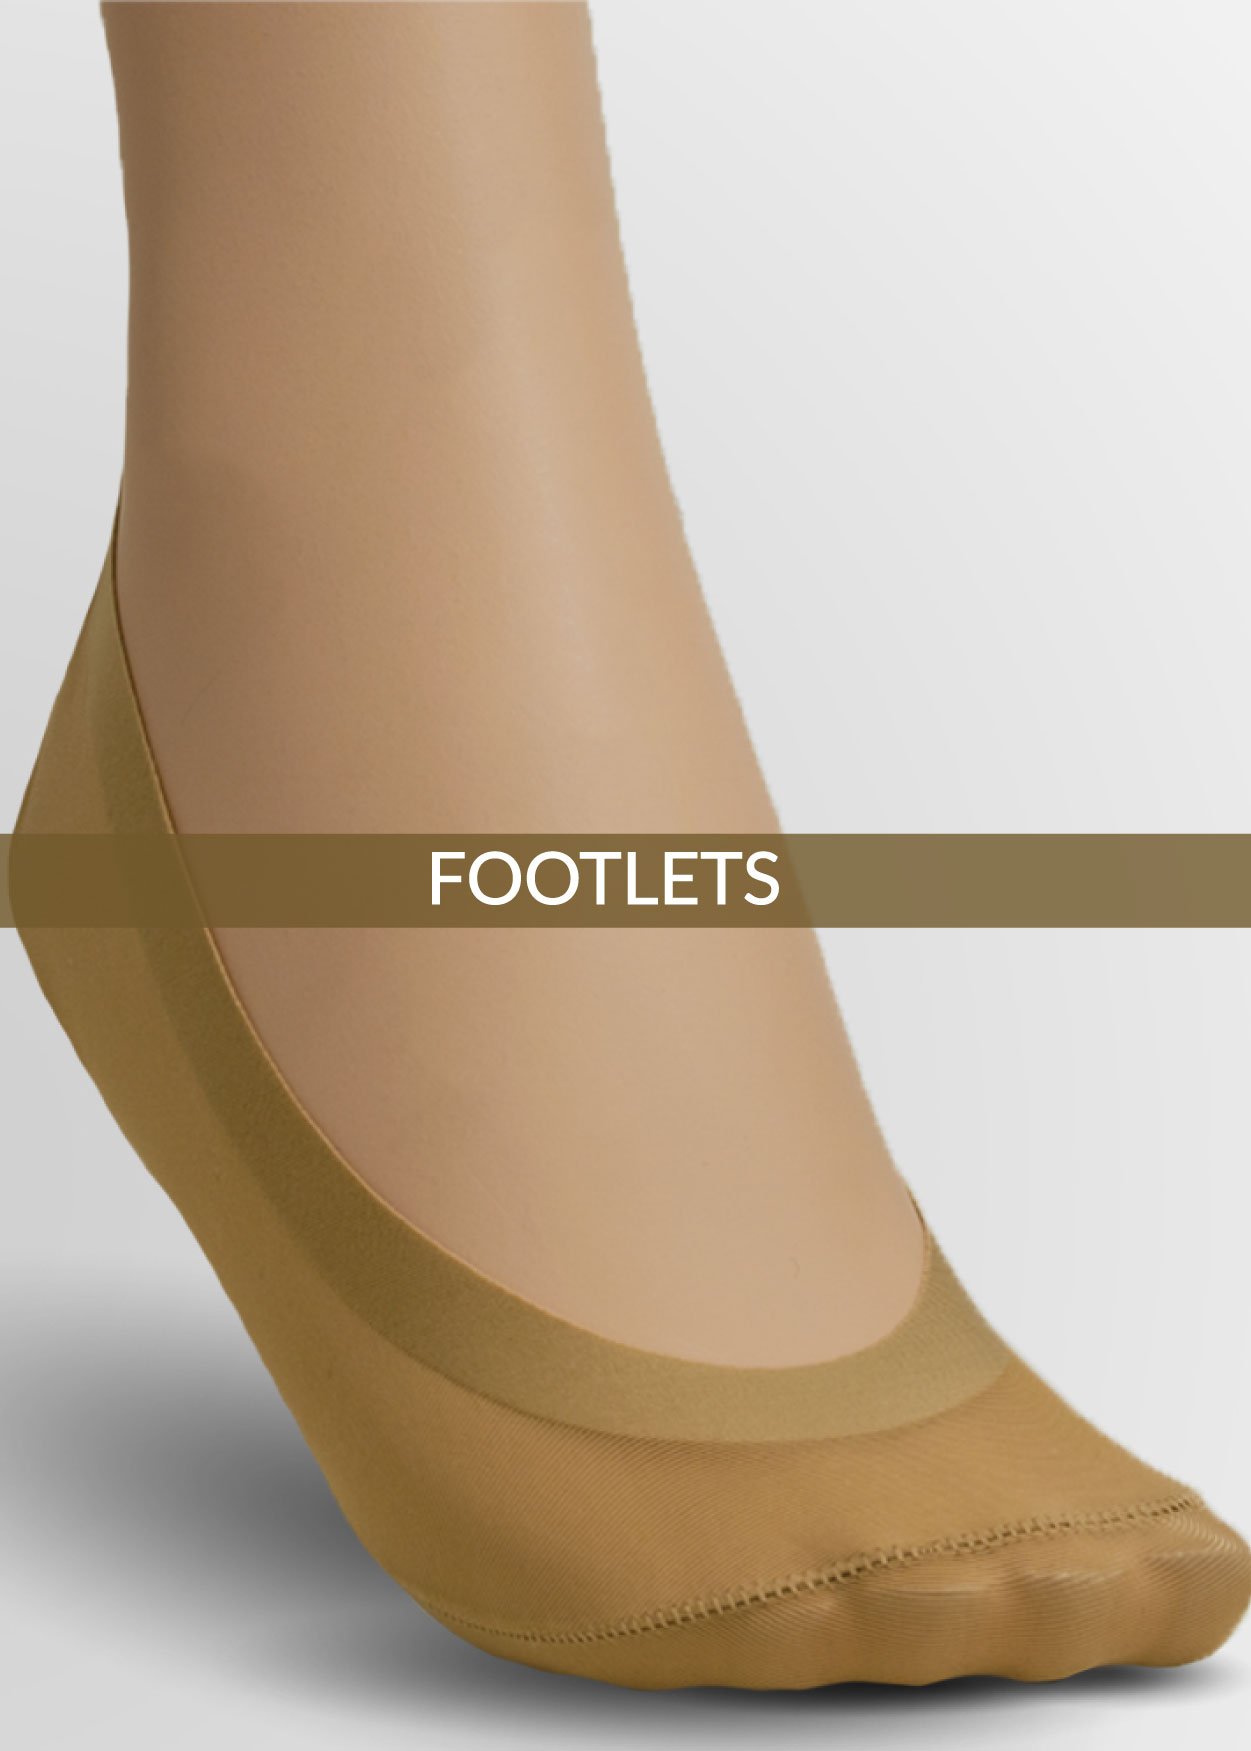 Footlets